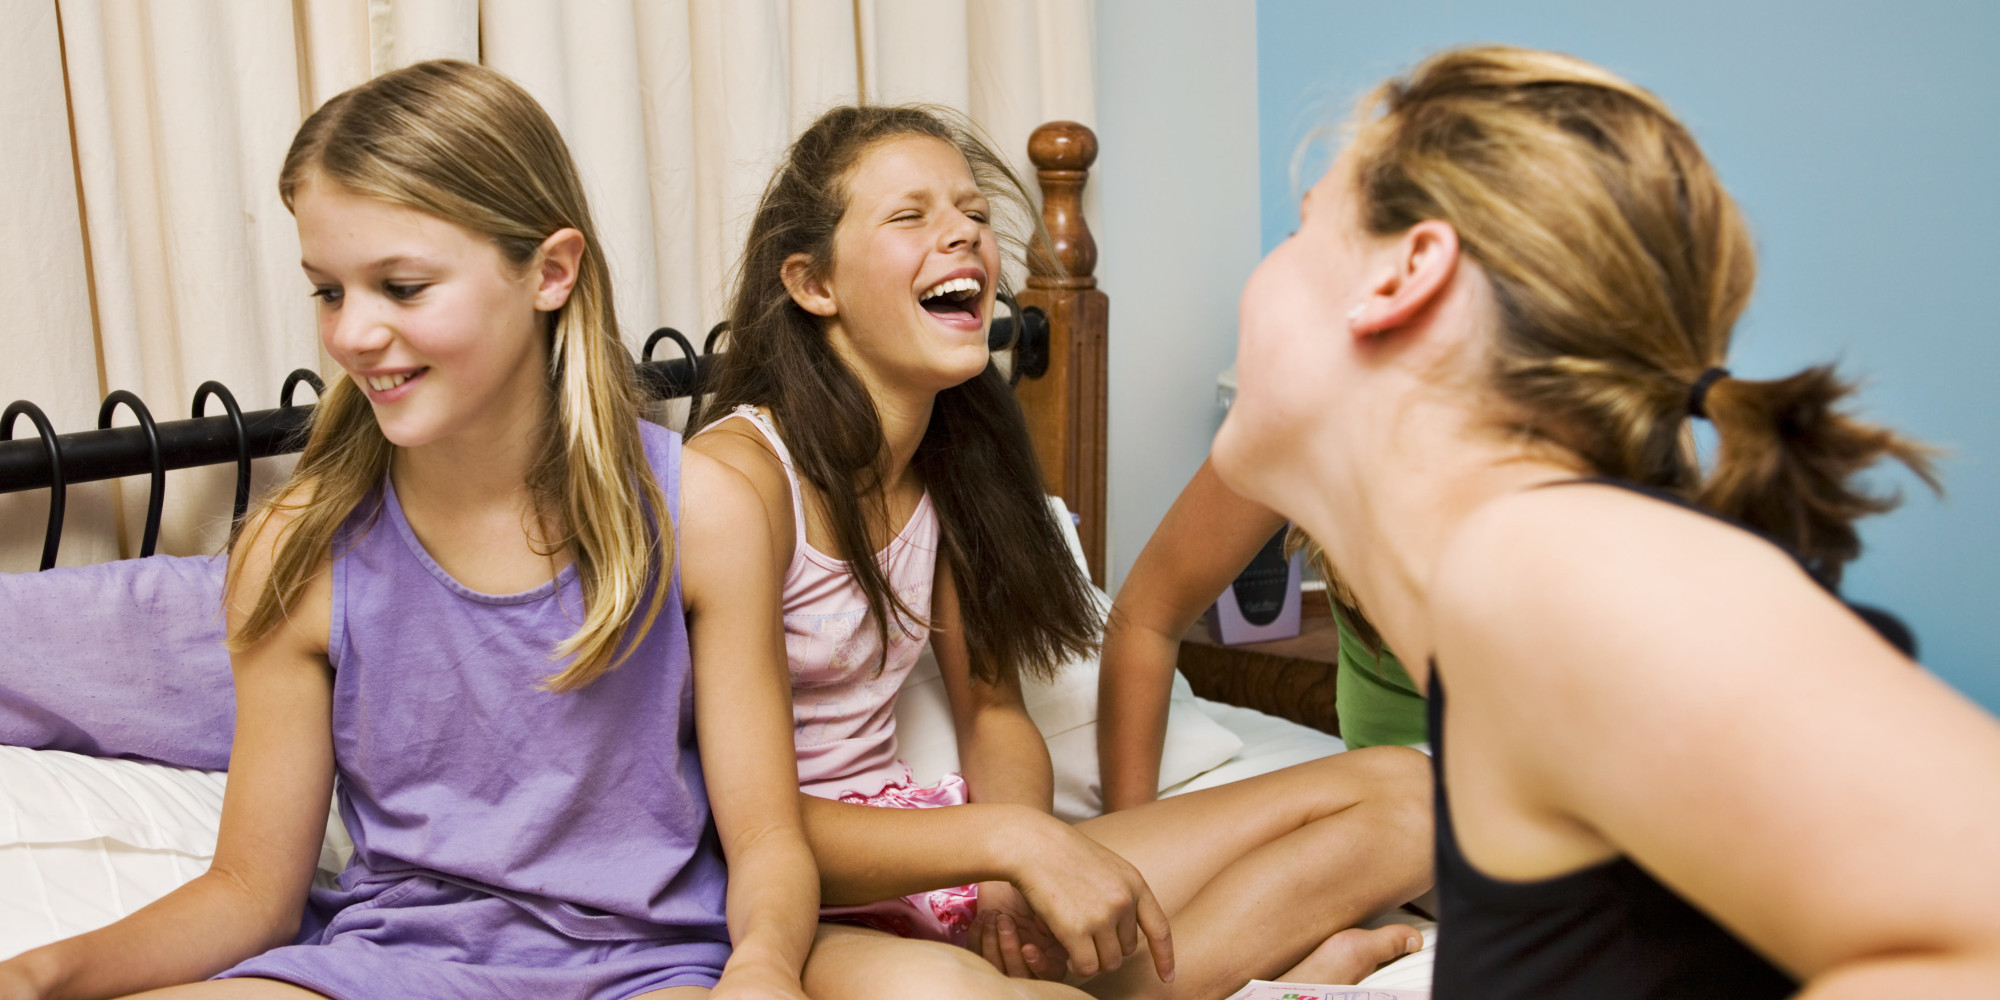 Teen Sleepover Fun 74